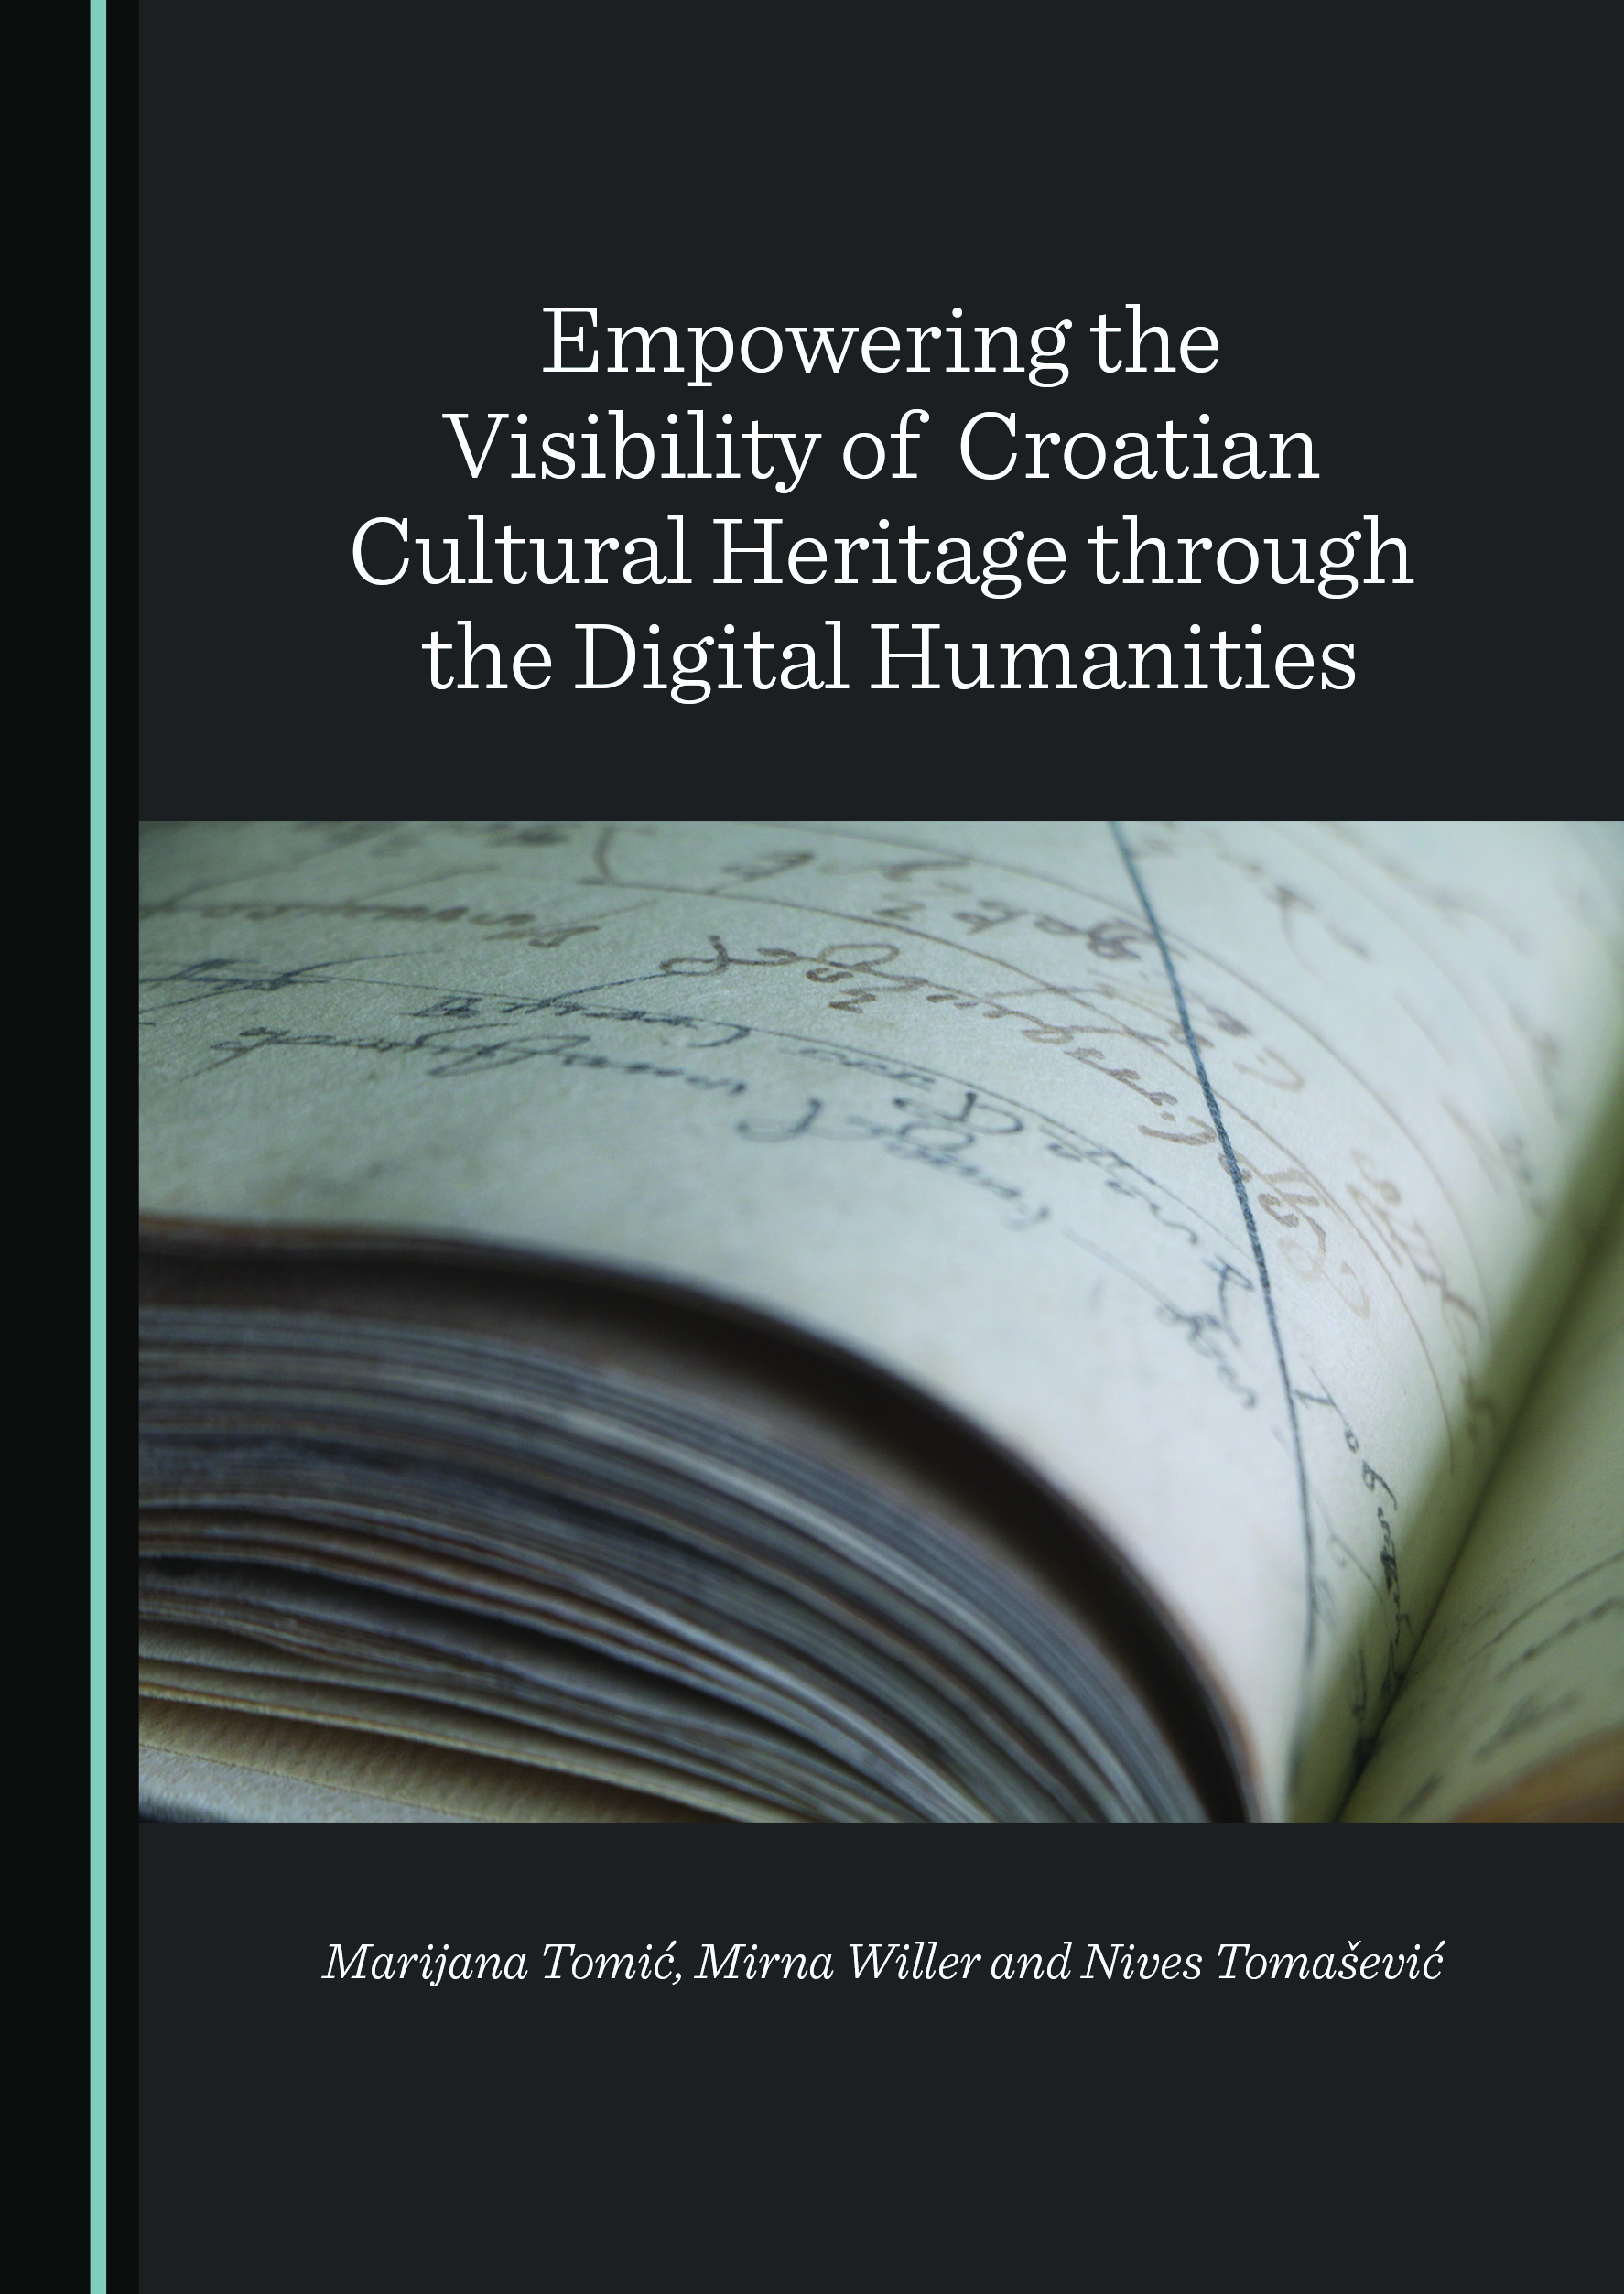 Empowering the Visibility of Croatian Cultural Heritage through the Digital Humanities